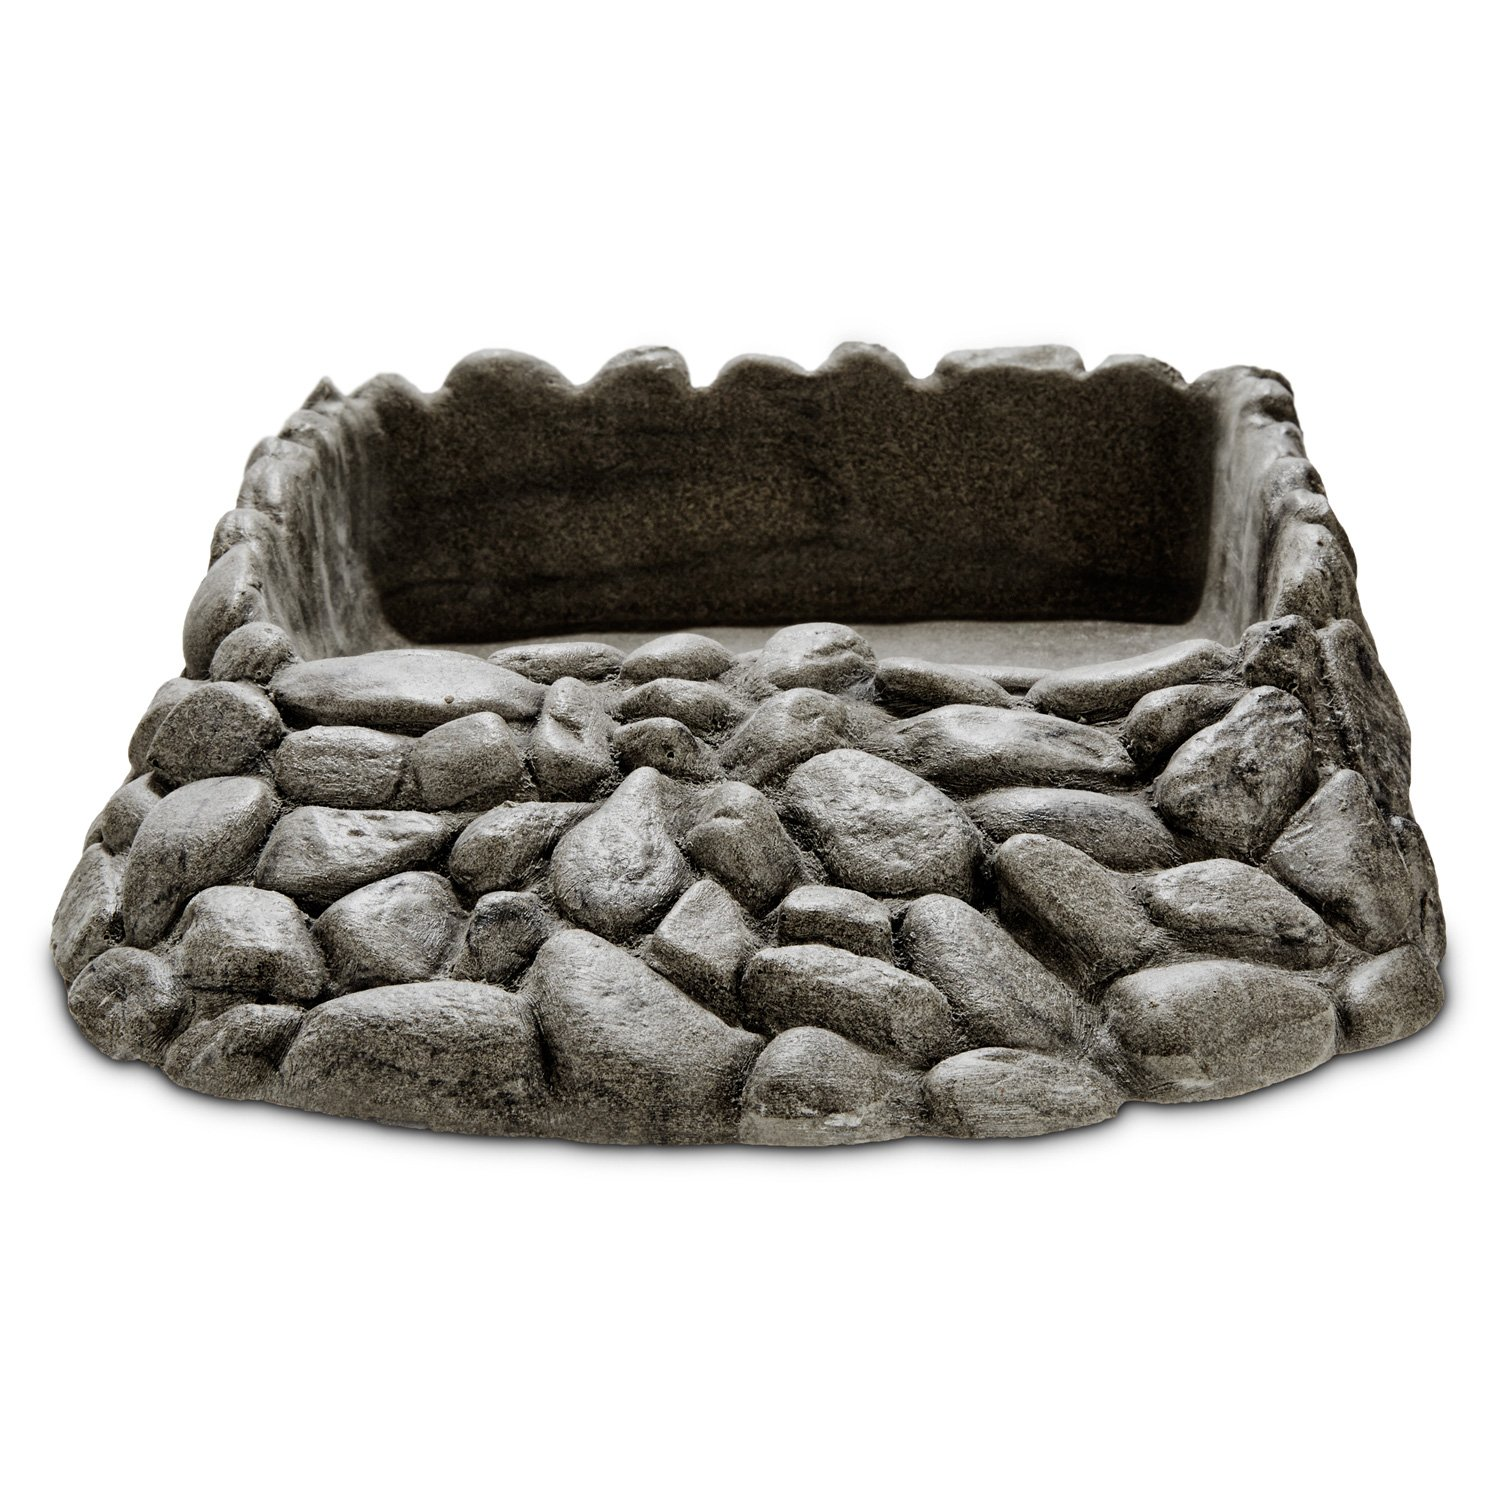 Imagitarium Reptile Ramp Bowl Petco